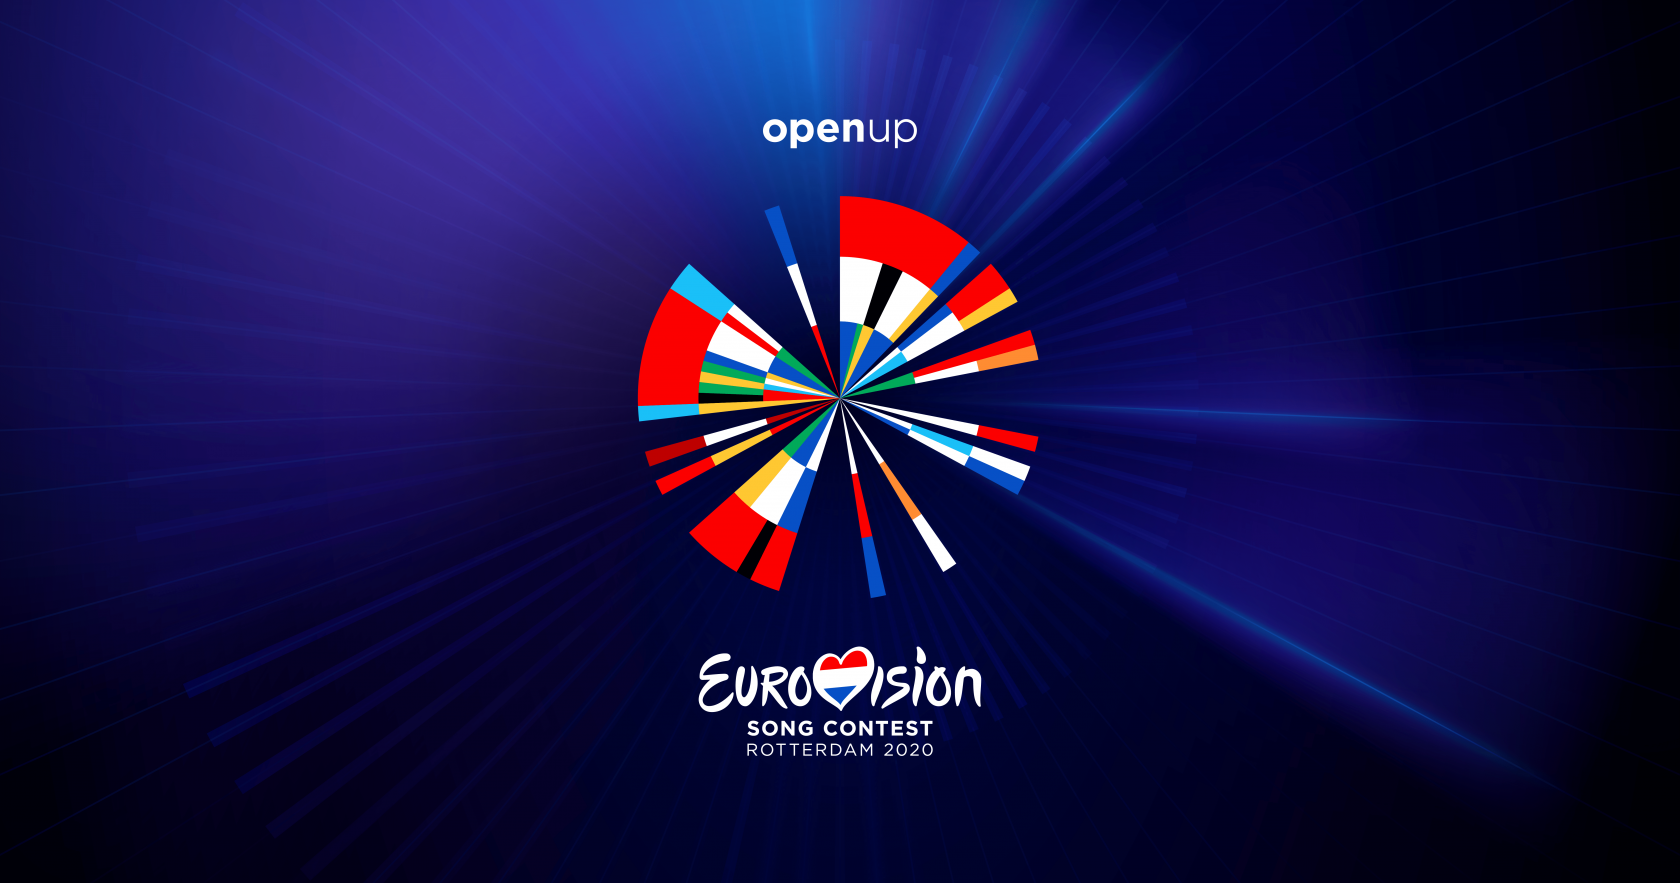 Eurovision Song Contest 2020 Event Design